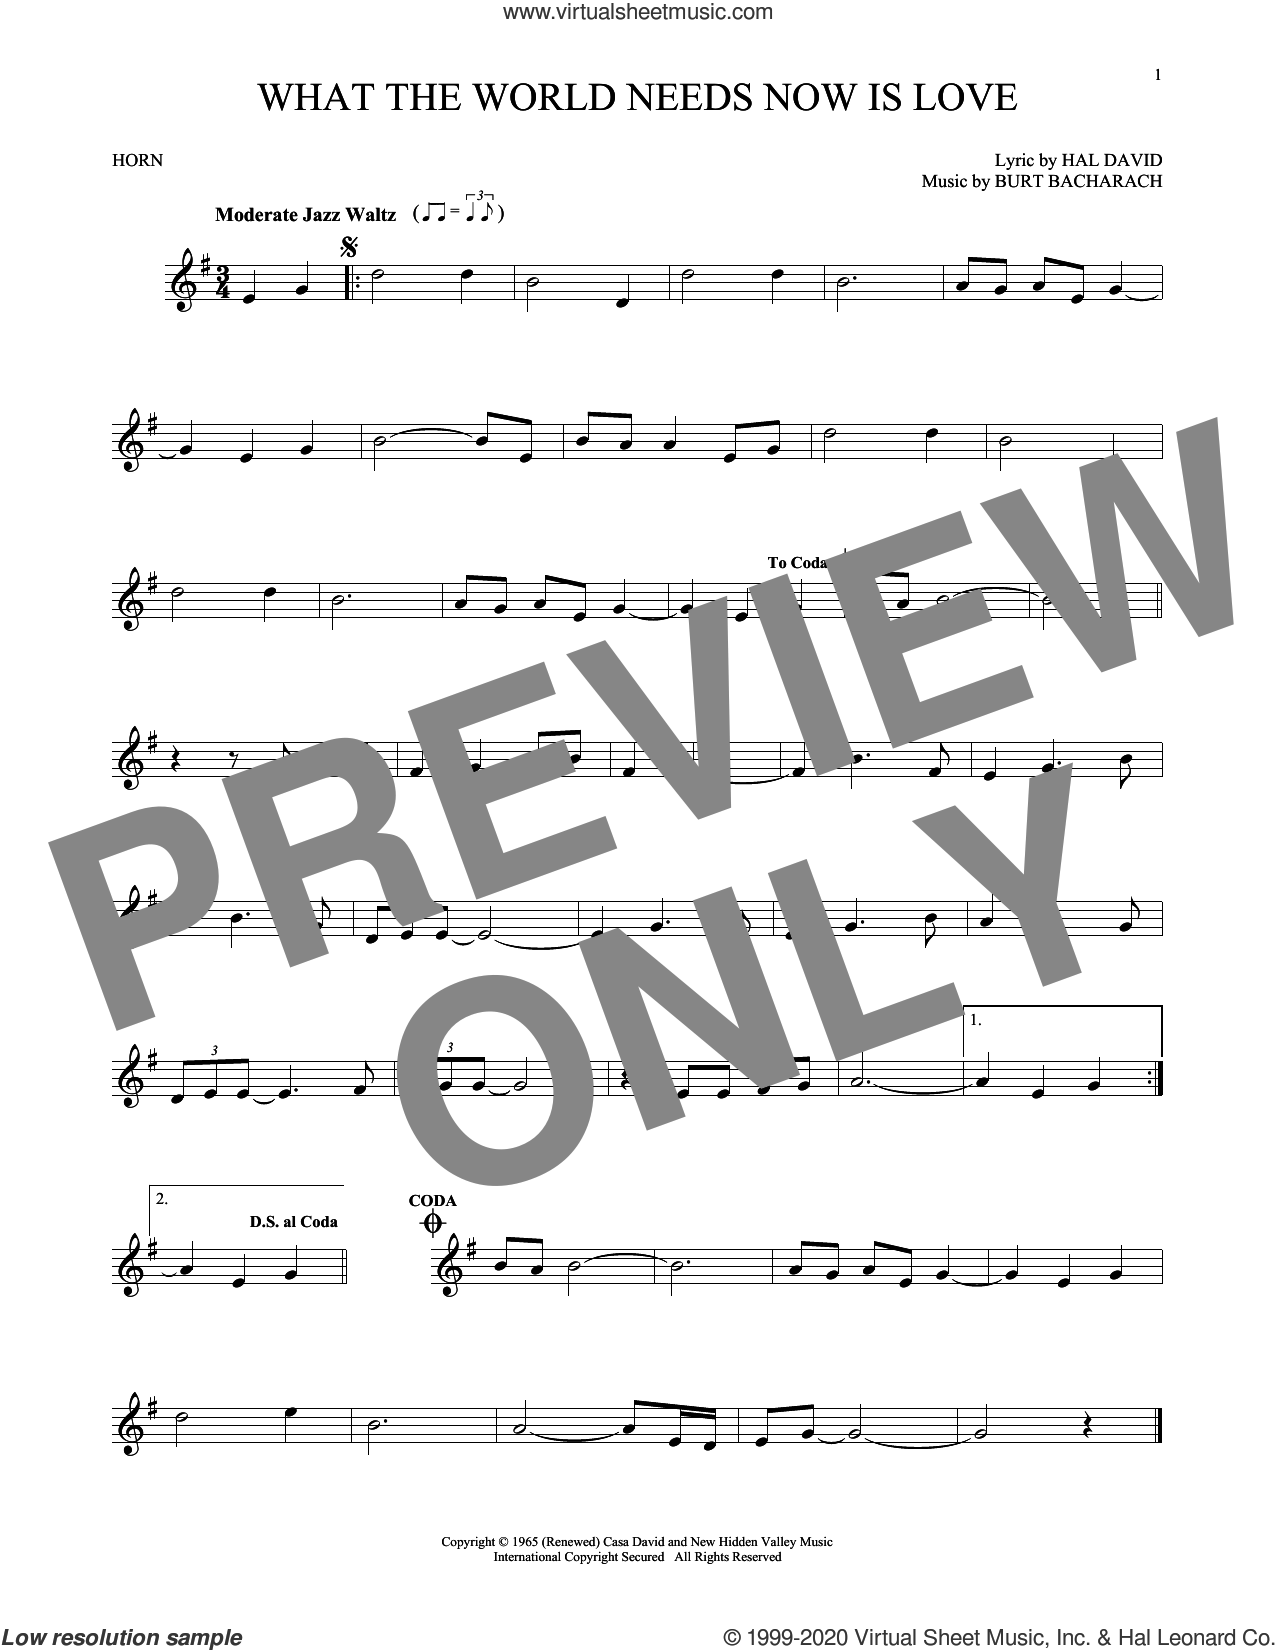 What The World Needs Now Is Love sheet music for horn solo by Bacharach & David, Jackie DeShannon, Burt Bacharach and Hal David, intermediate skill level